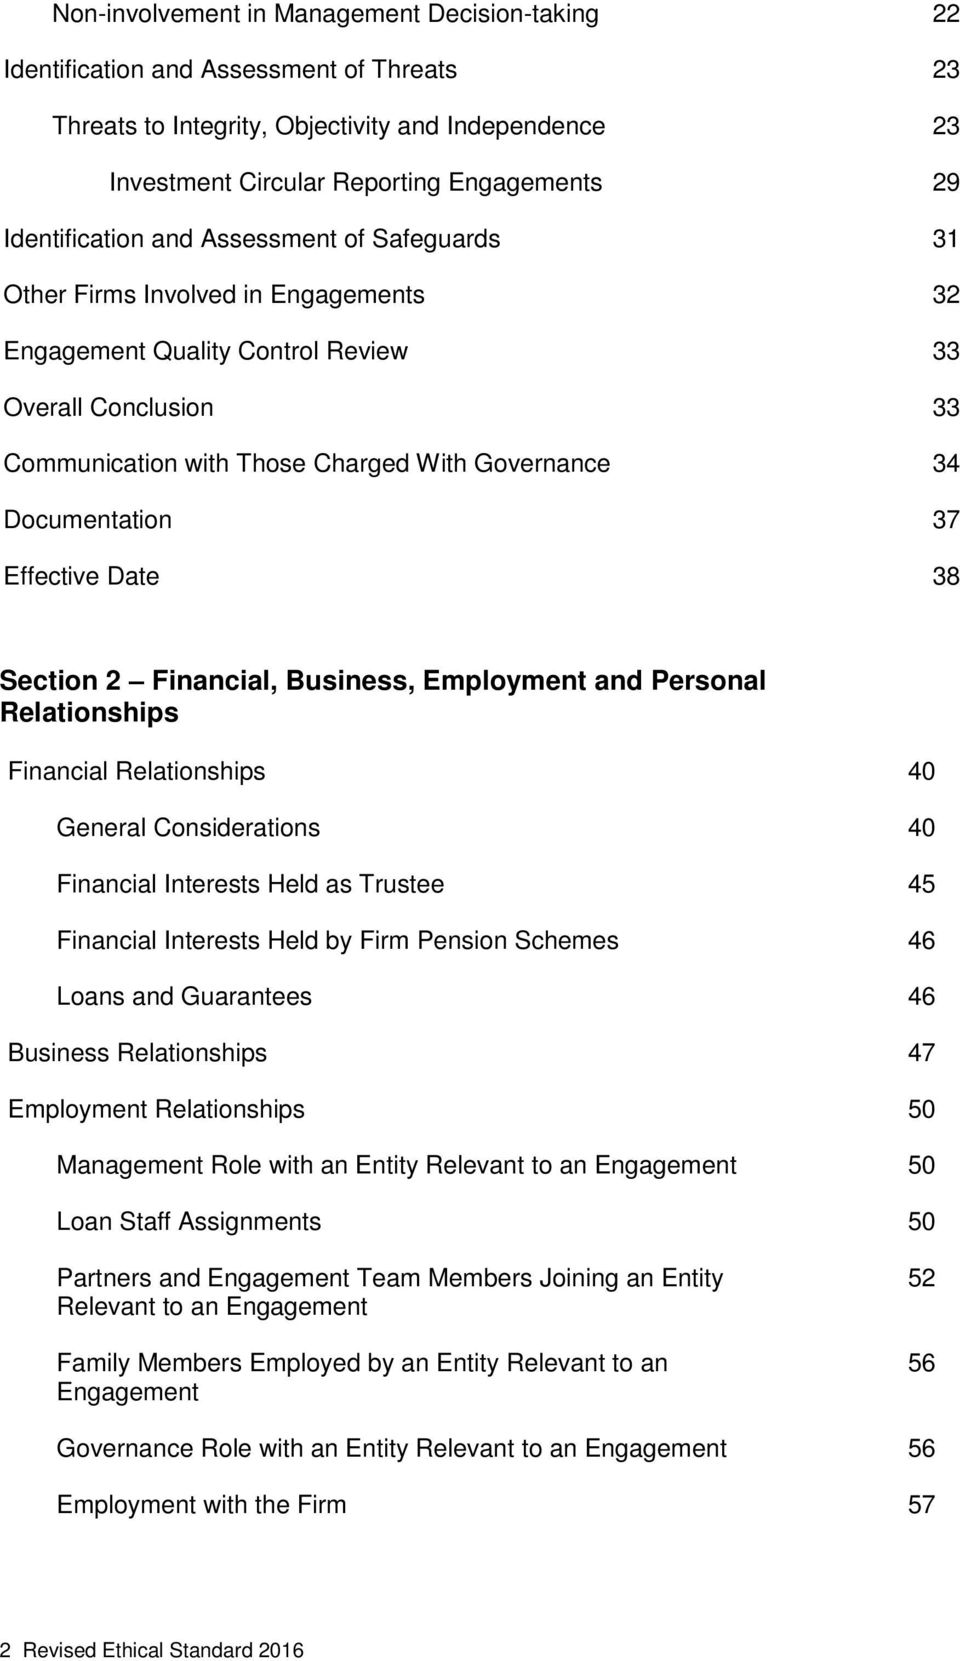 Documentation 37 Effective Date 38 Section 2 Financial, Business, Employment and Personal Relationships Financial Relationships 40 General Considerations 40 Financial Interests Held as Trustee 45